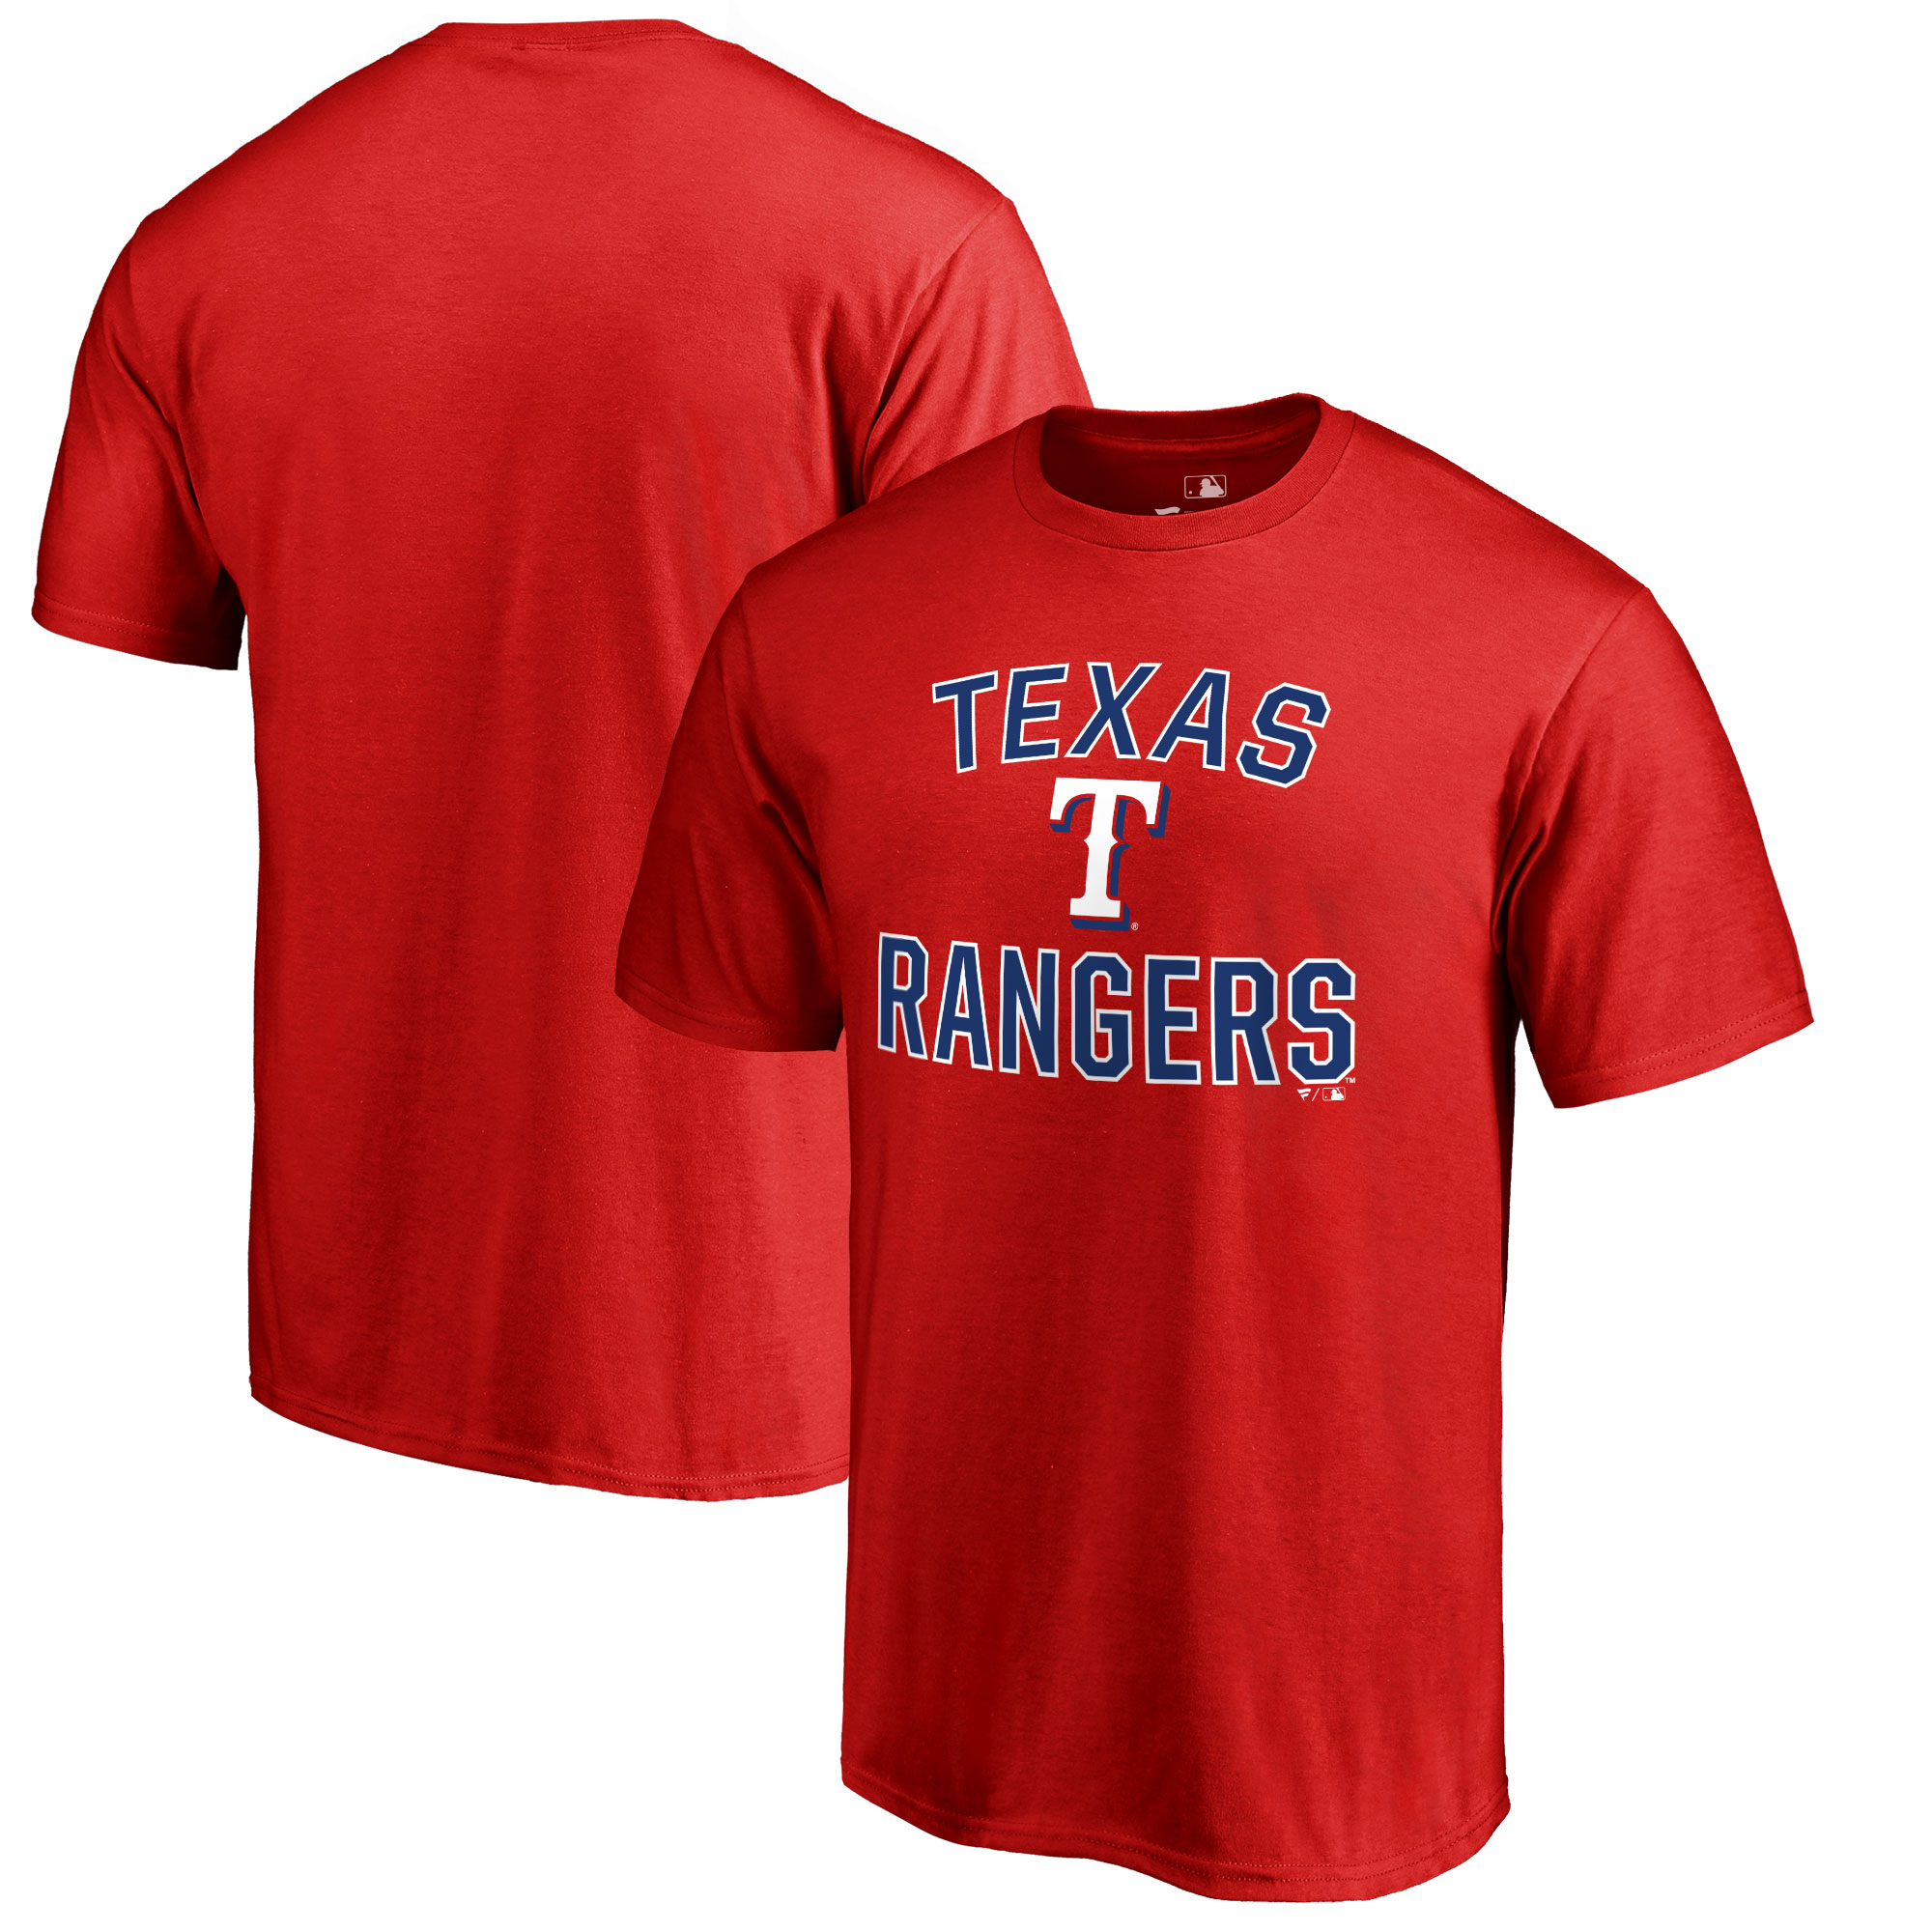 Texas Rangers Victory Arch T-Shirt - Red